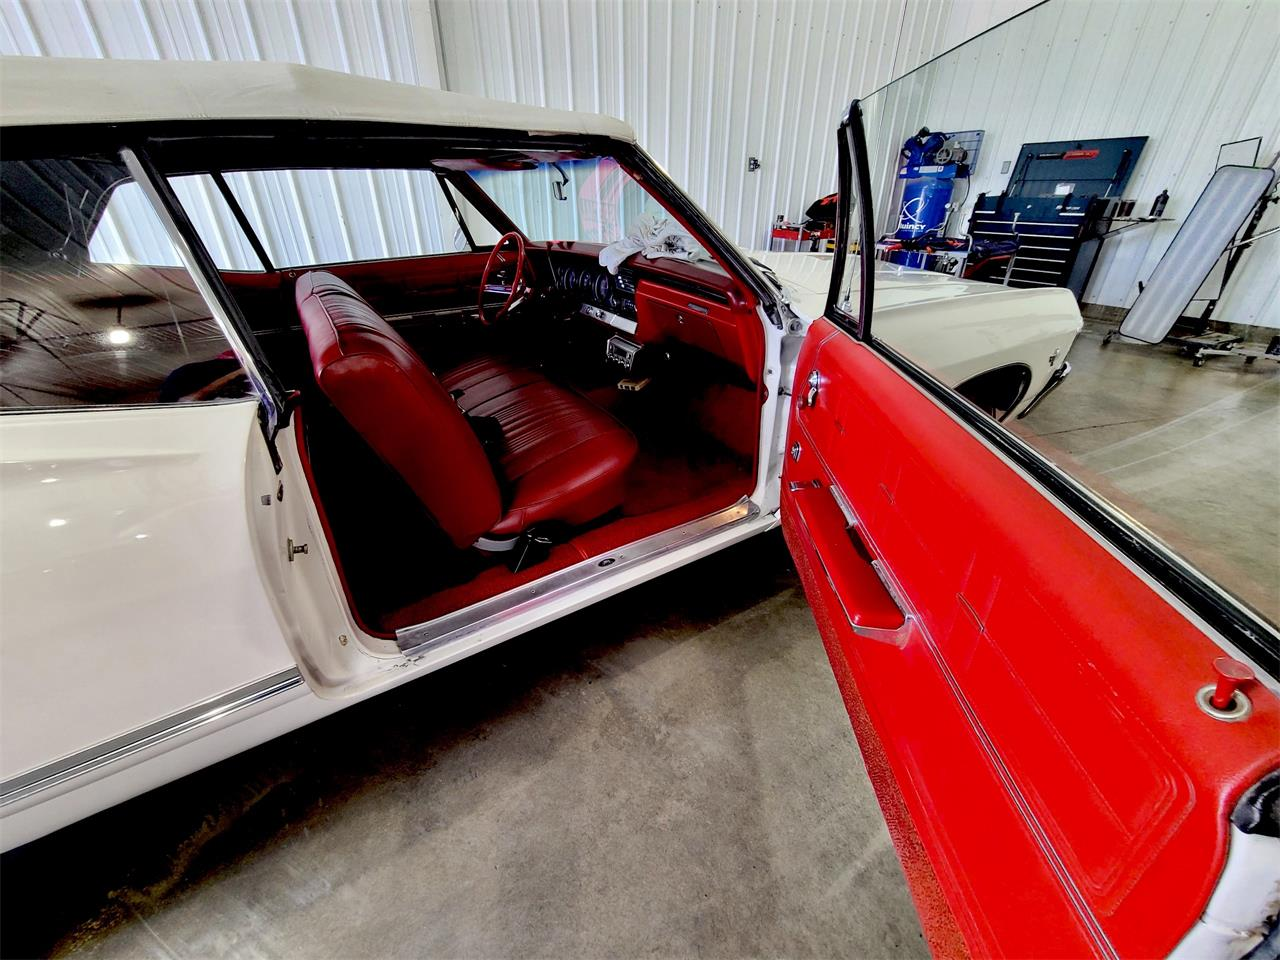 1967 Chevrolet Impala (CC-1388679) for sale in Great Falls, Montana